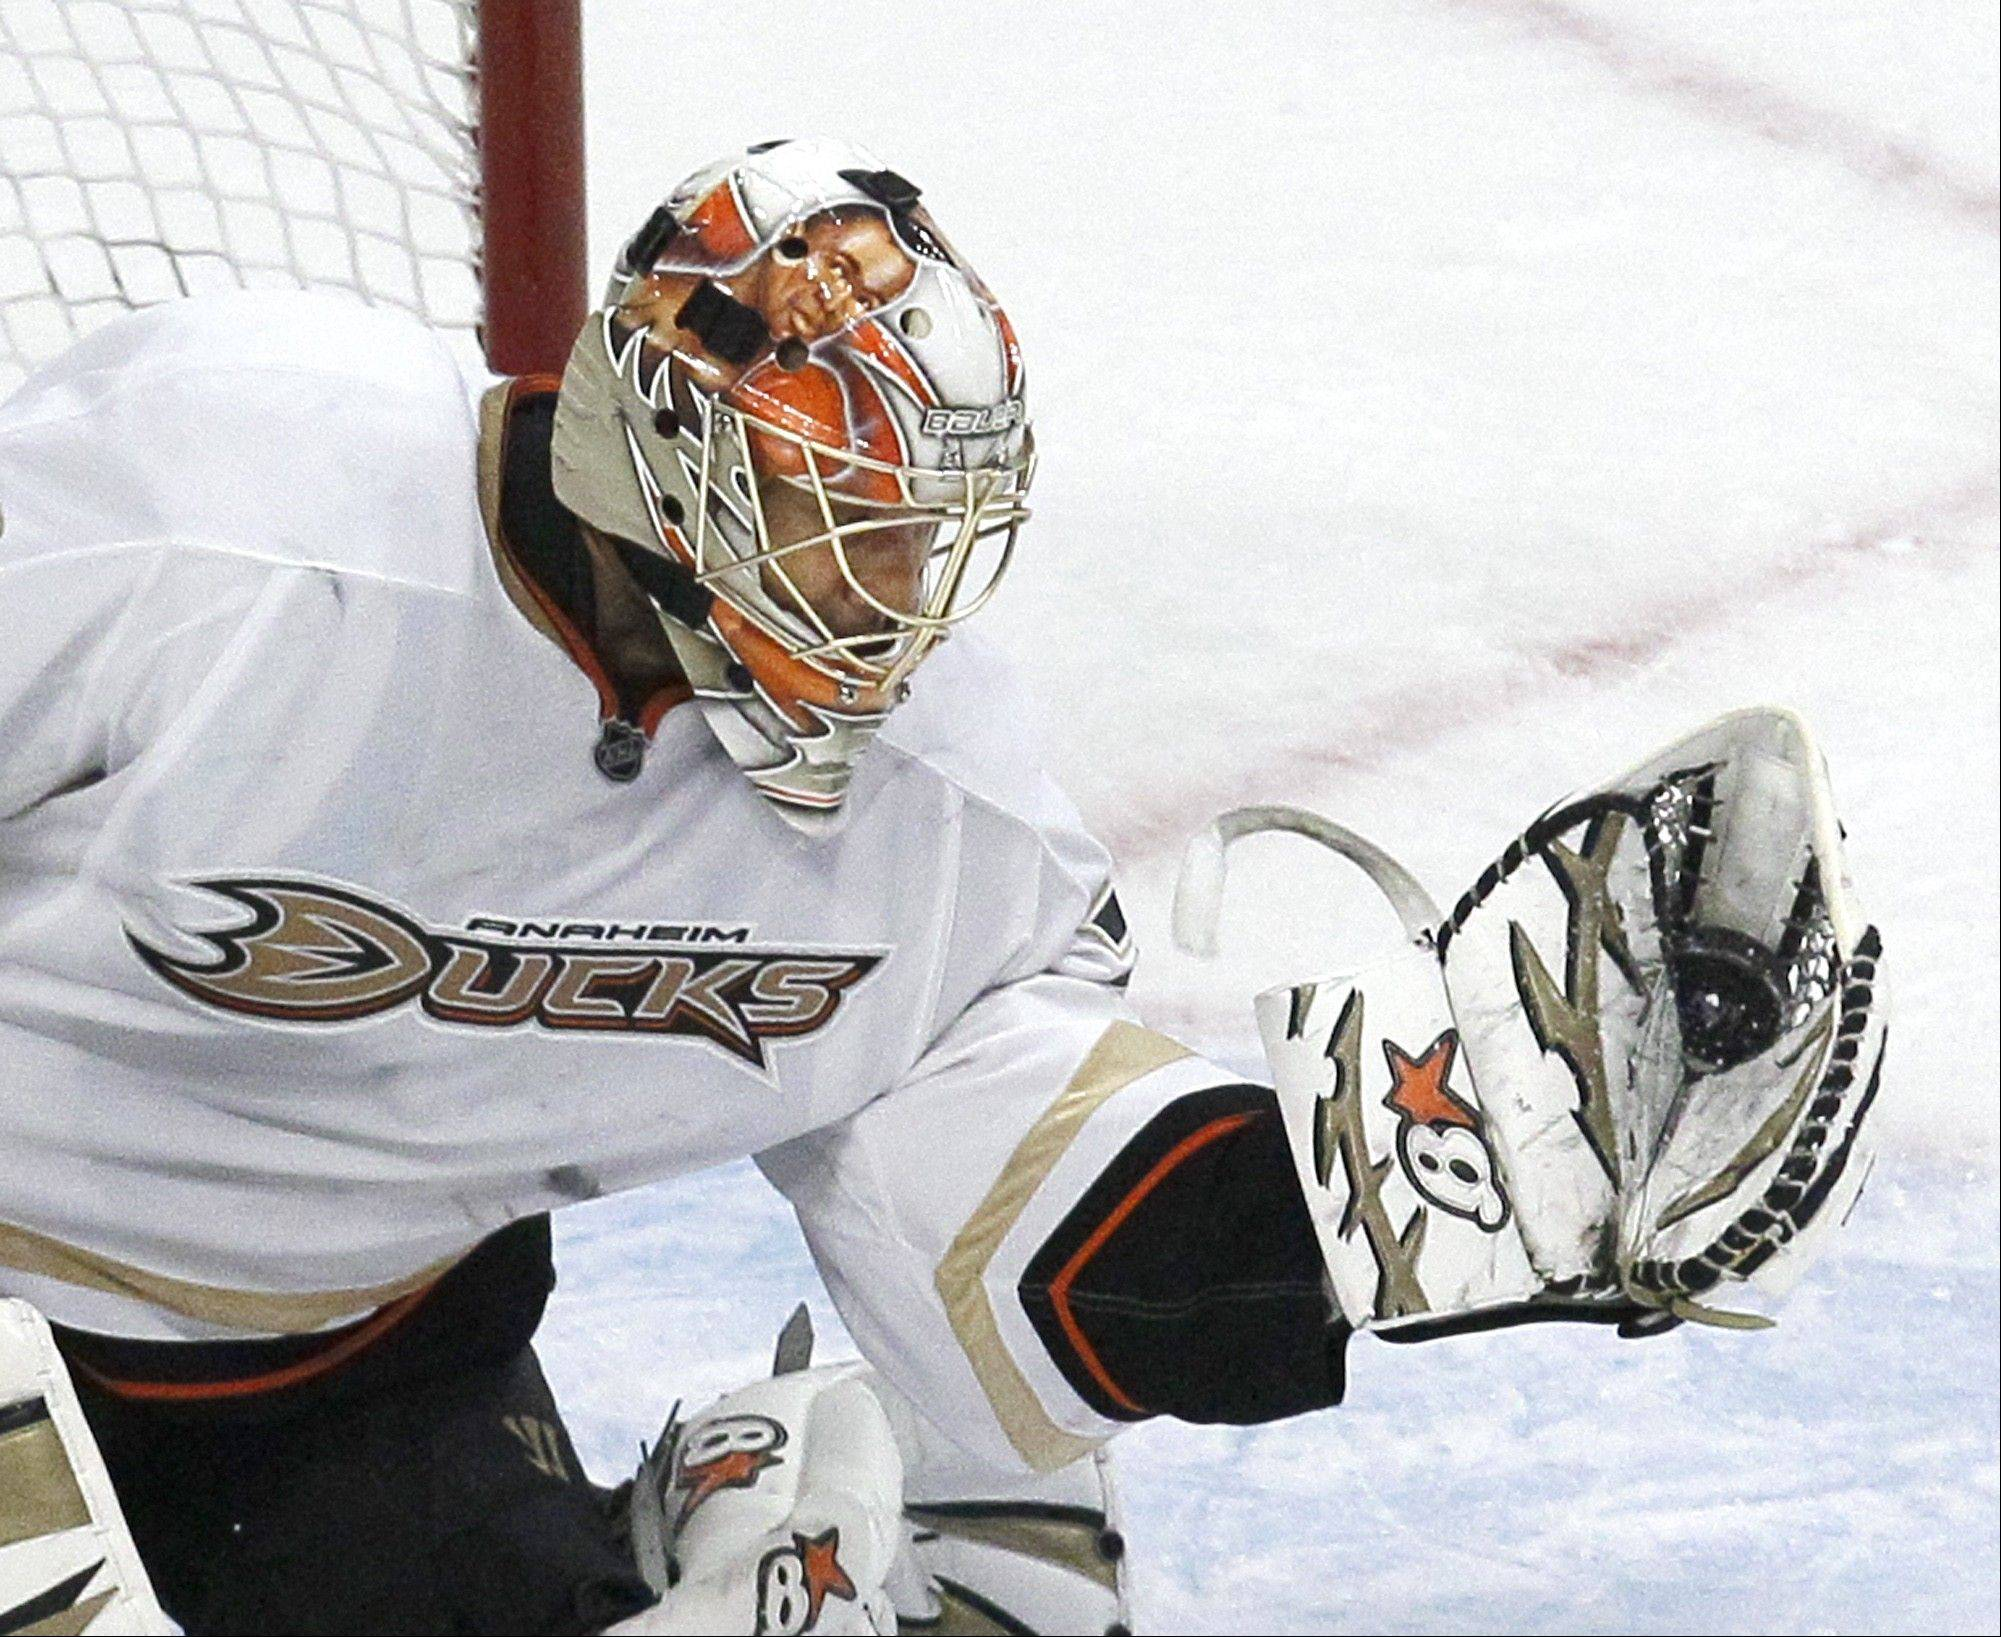 Former Anaheim goalie Ray Emery will have a chance in Chicago to earn the backup spot behind Corey Crawford, Hawks general manager Stan Bowman said Thursday.